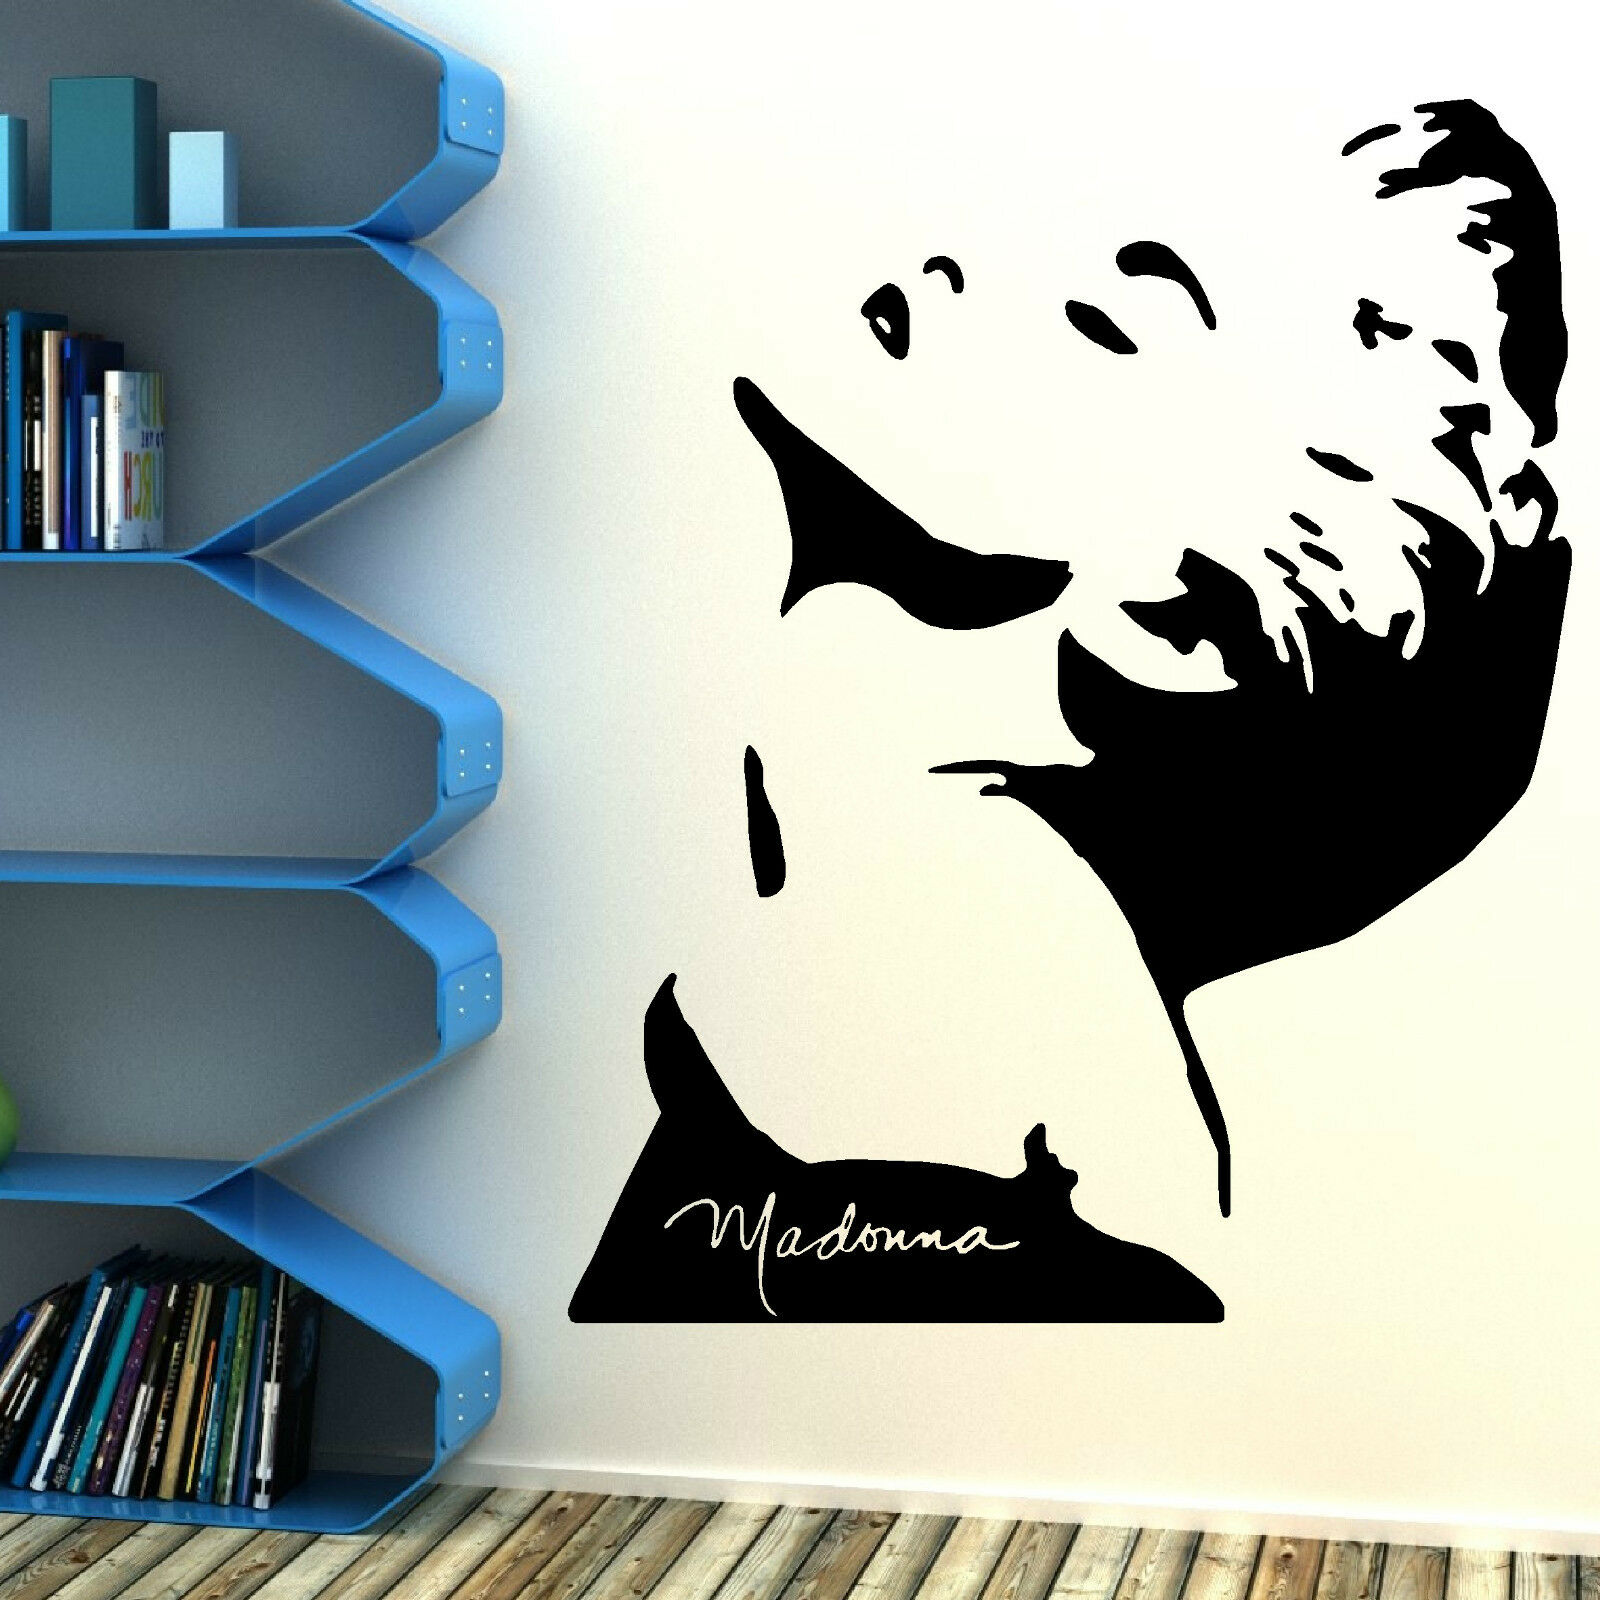 Madonna vinyl wall art sticker decal mural ebay for Decal wall art mural